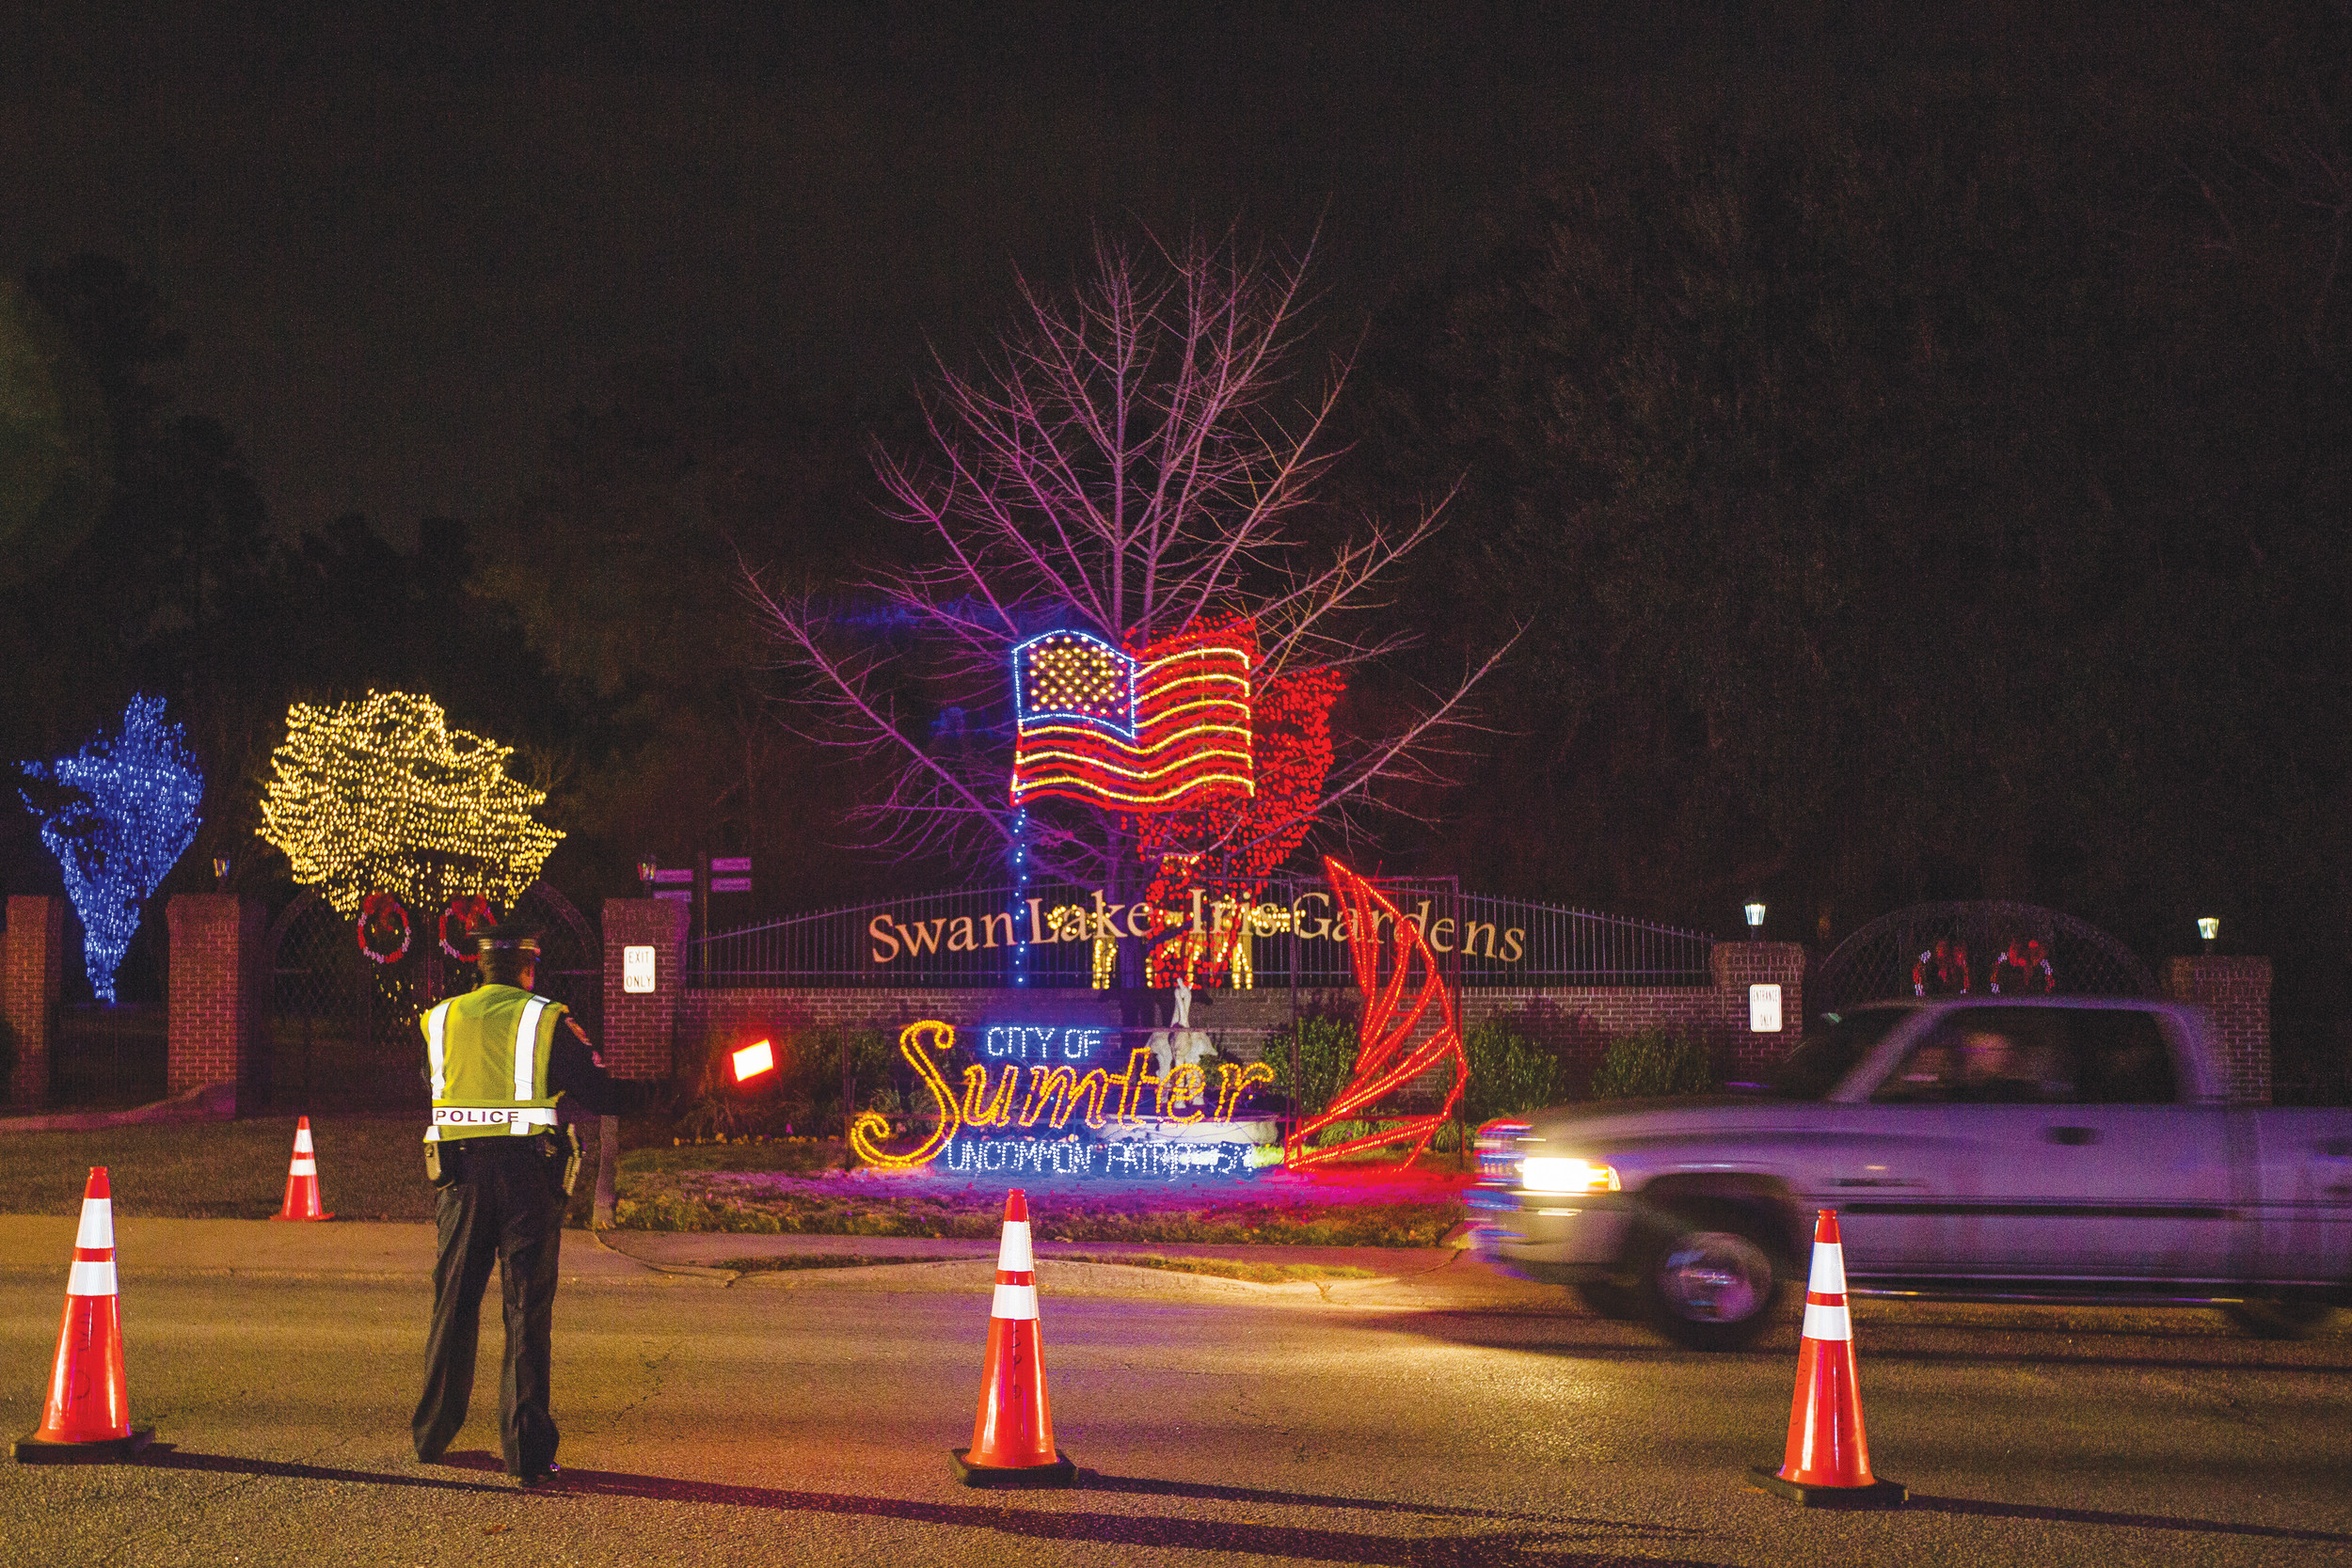 Law enforcement directs traffic at the entrance to Swan Lake-Iris Gardens on Friday.